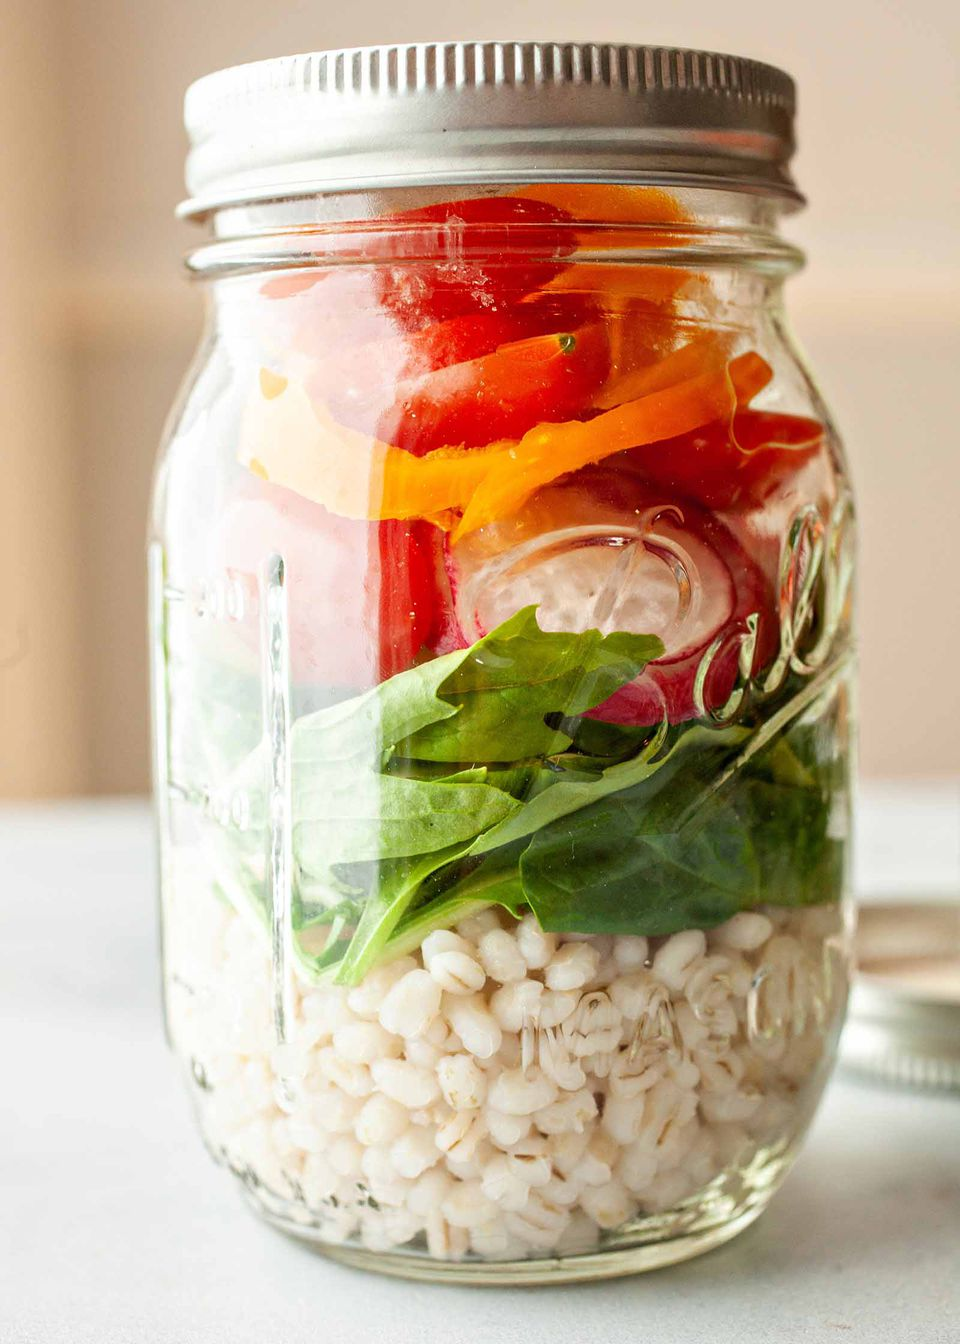 Mason Jar Barley Salad - layered barley and vegetables in mason jar